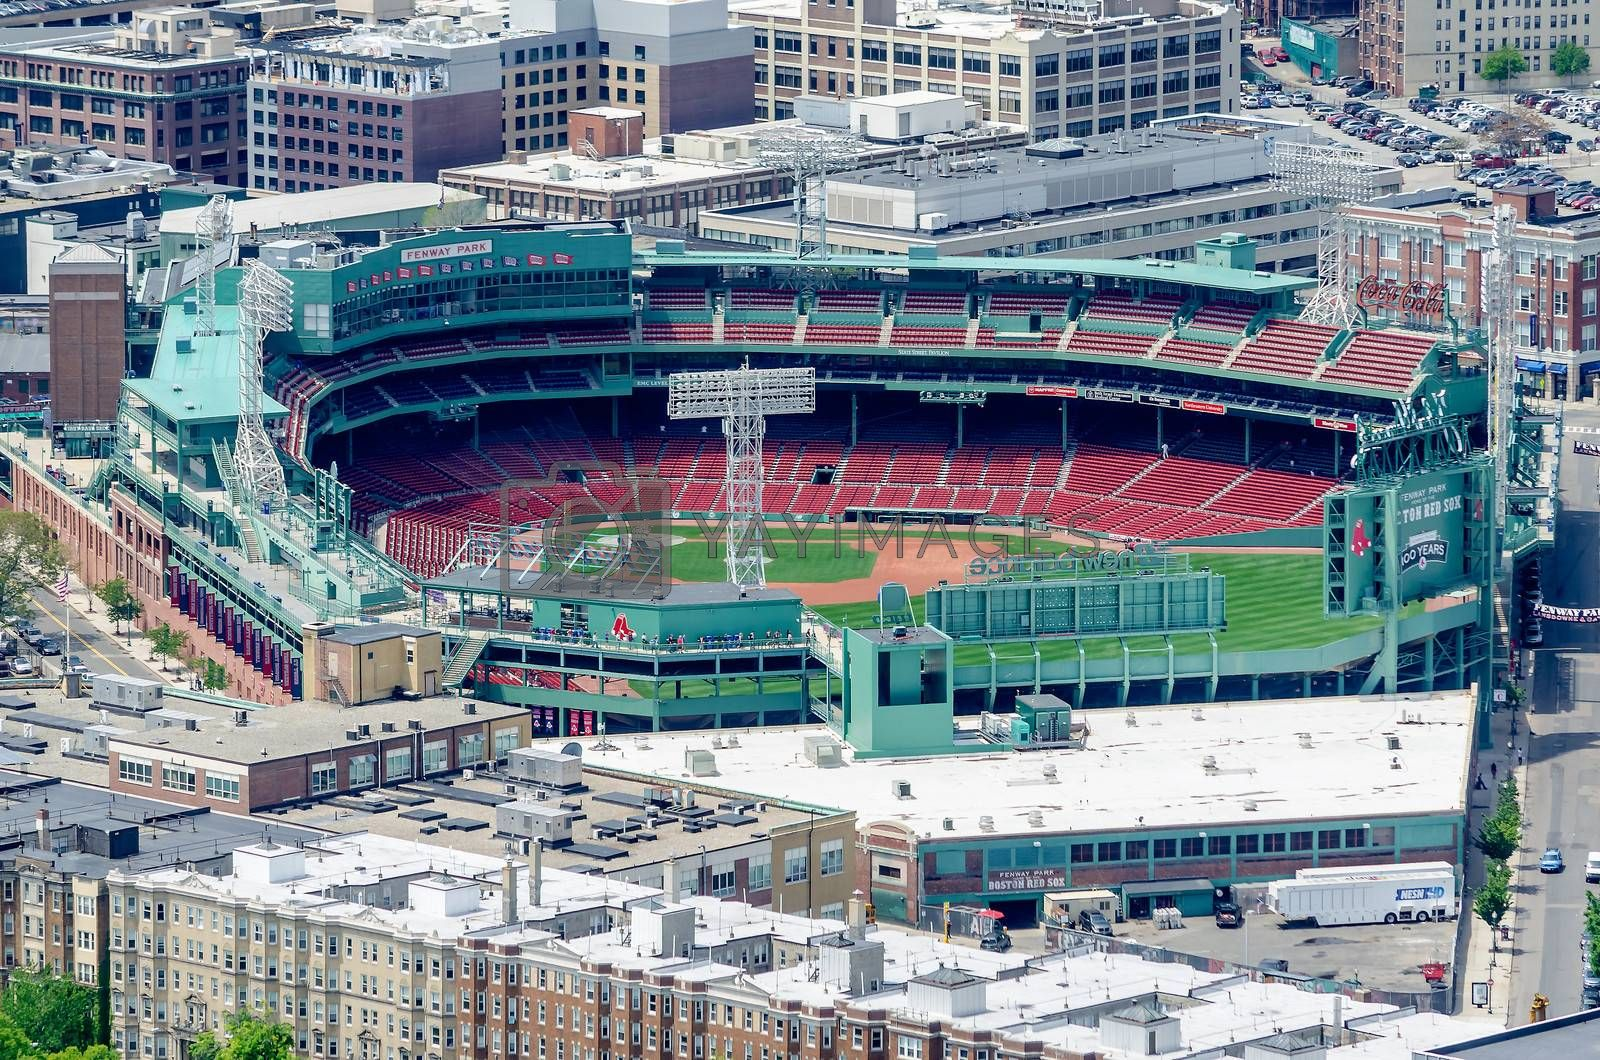 Aerial View of Fenway Park, home of the Boston Red Sox